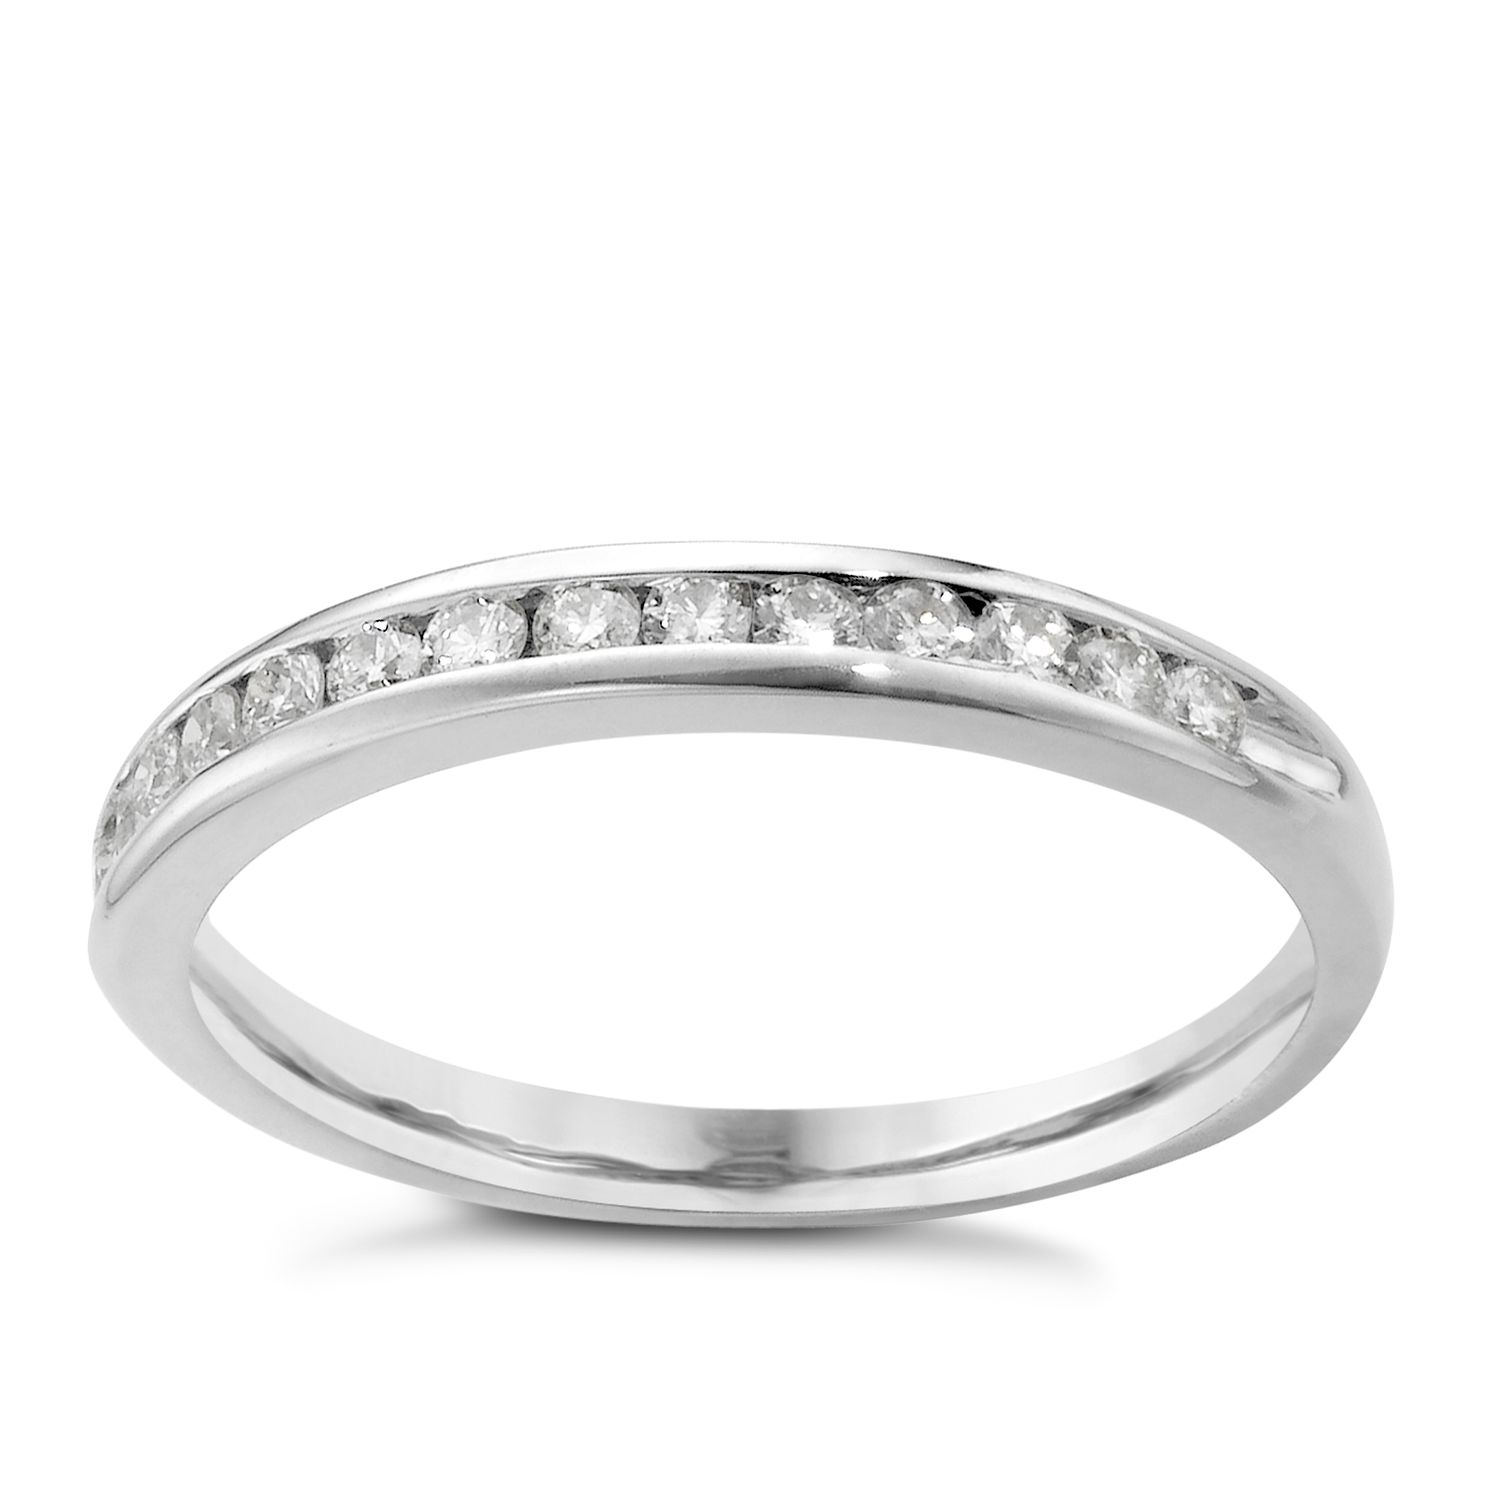 princess eternity carat gold band cl bands set white en with diamonds baunat full gw small in ring